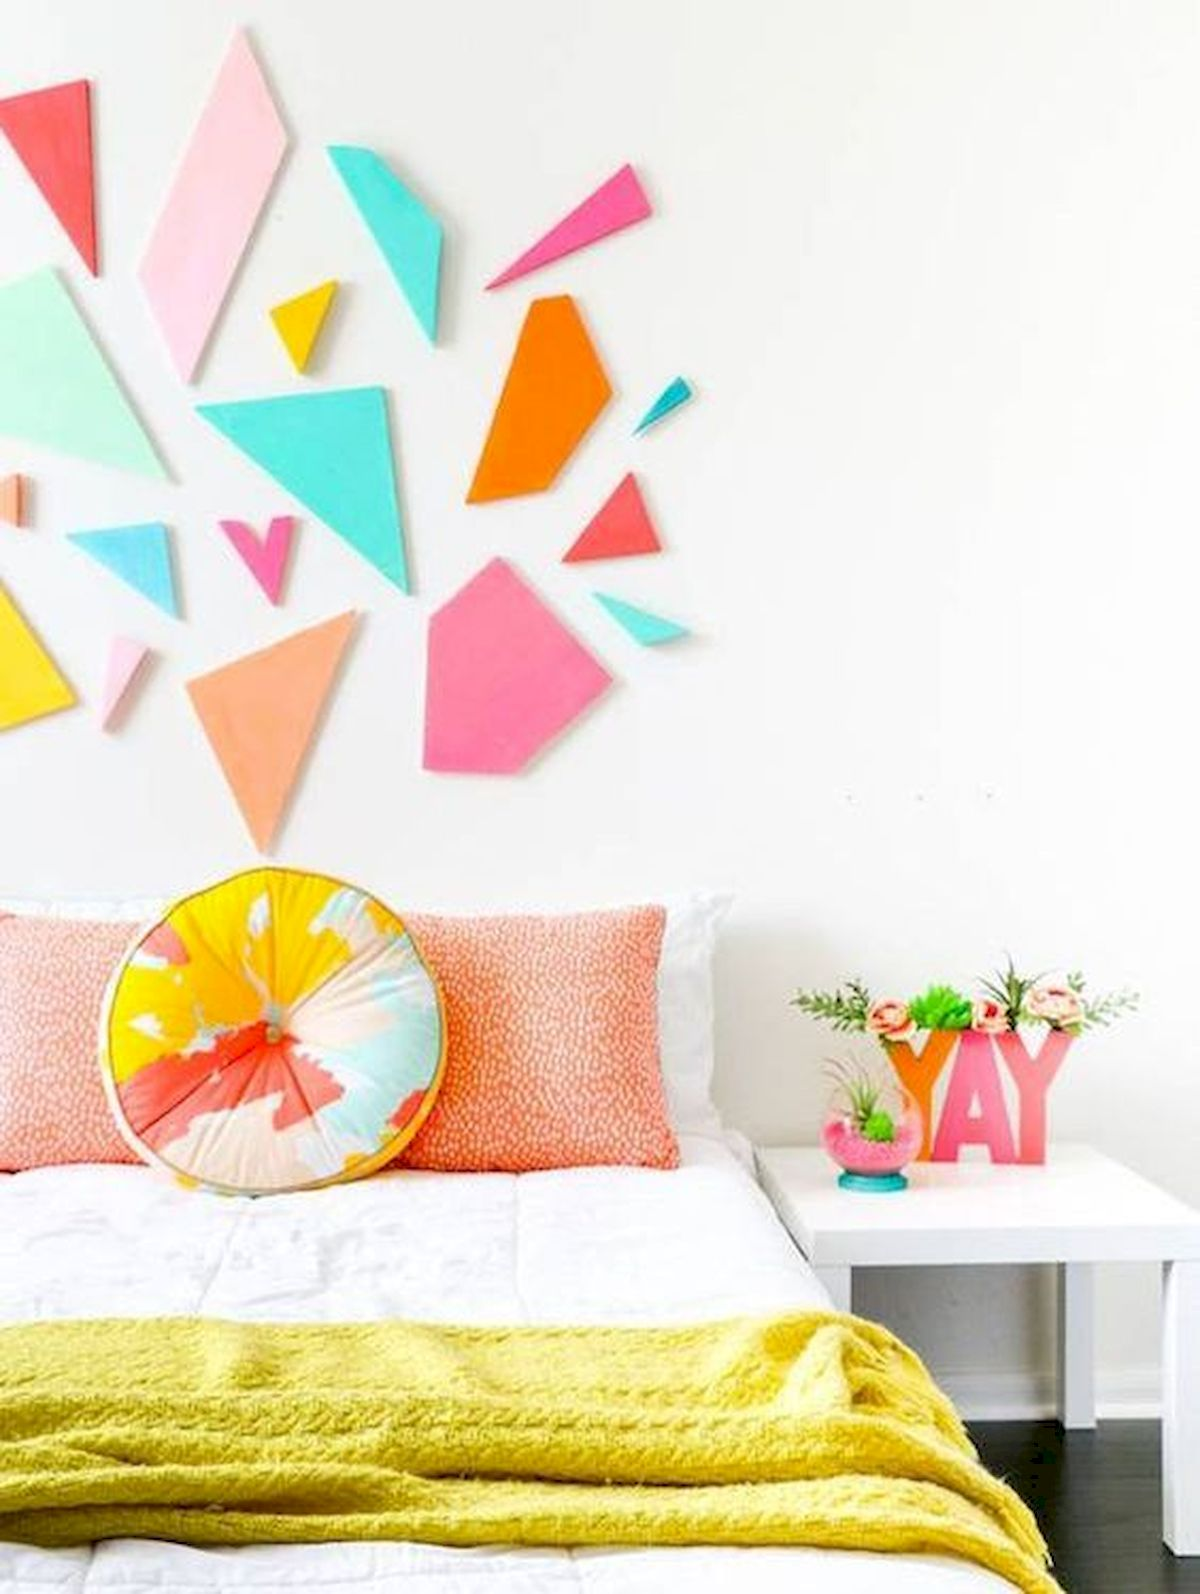 70 Awesome Colorful Bedroom Design Ideas and Remodel (59)